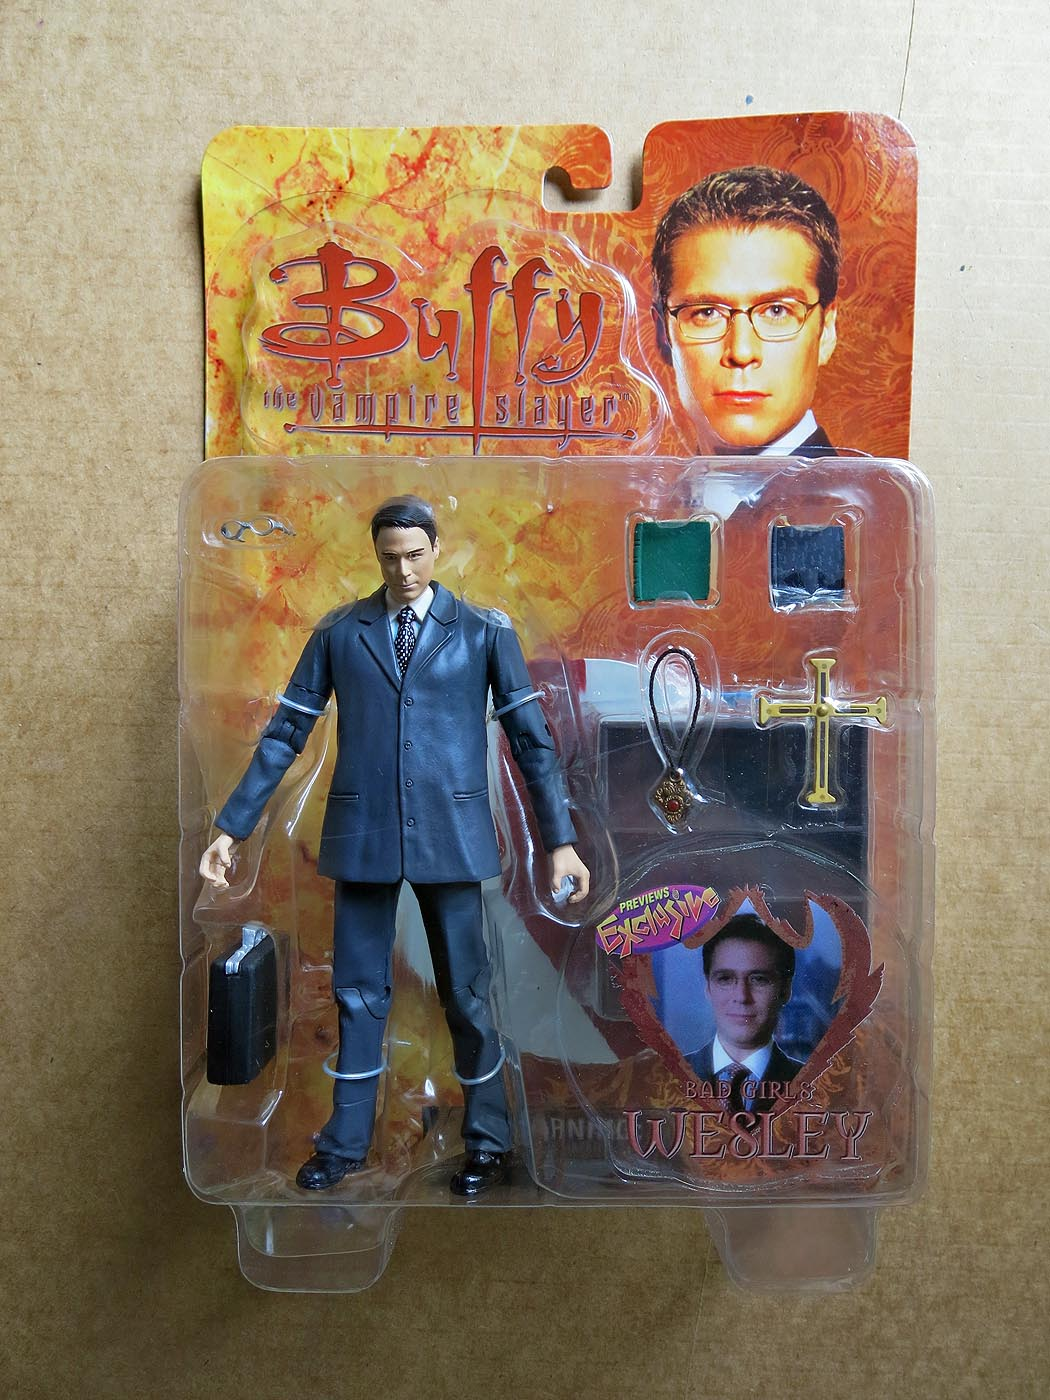 Buffy The Vampire Slayer Bad Girls Wesley Action Figure (Previews Exclusive)